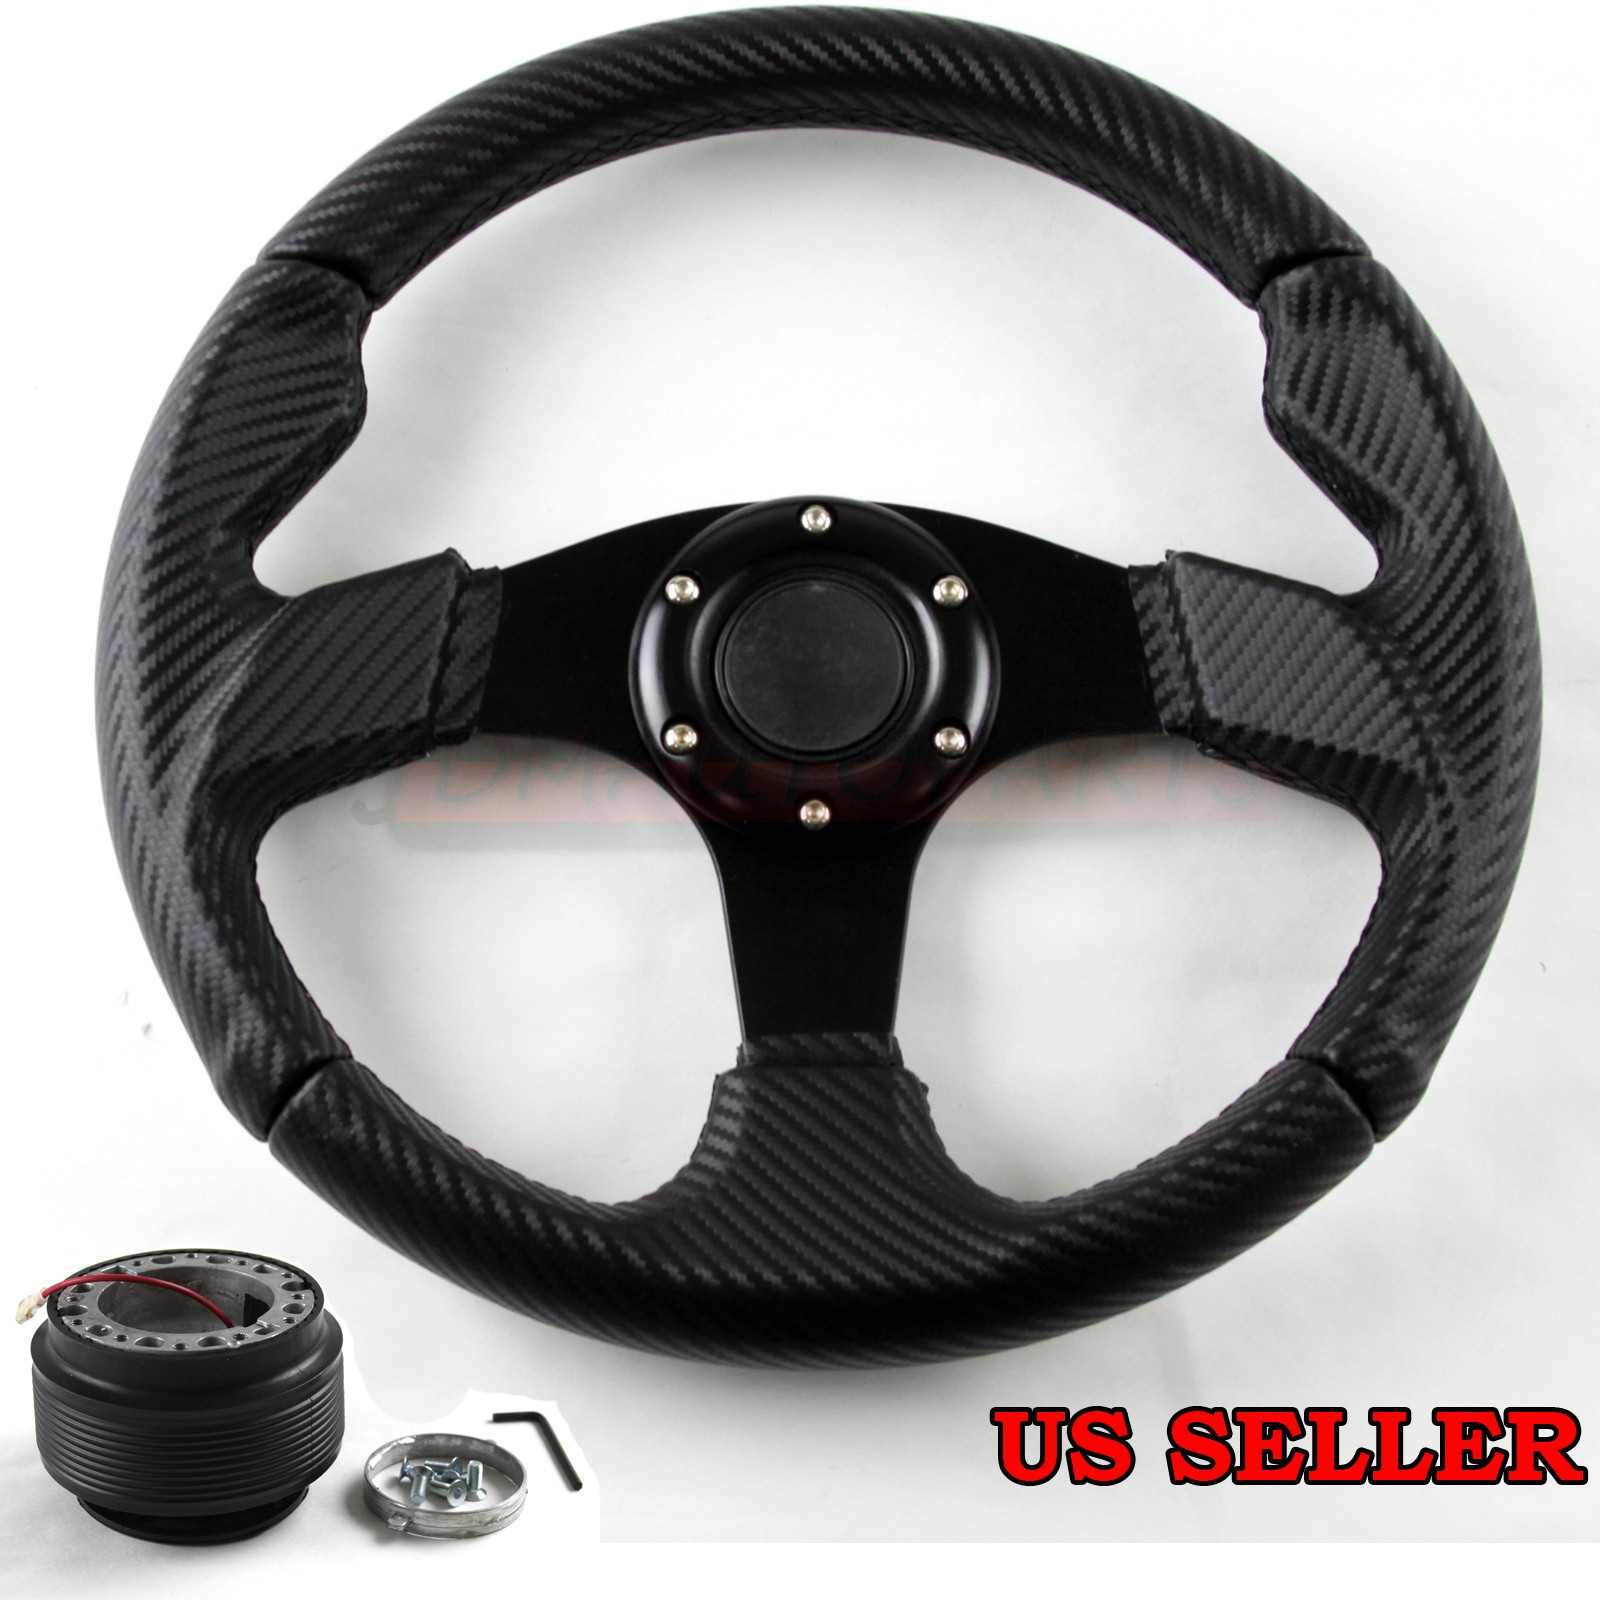 FOR 91-96 TOYOTA LAND CRUISER 320MM CF PATTERN PVC STEERING WHEEL + ...